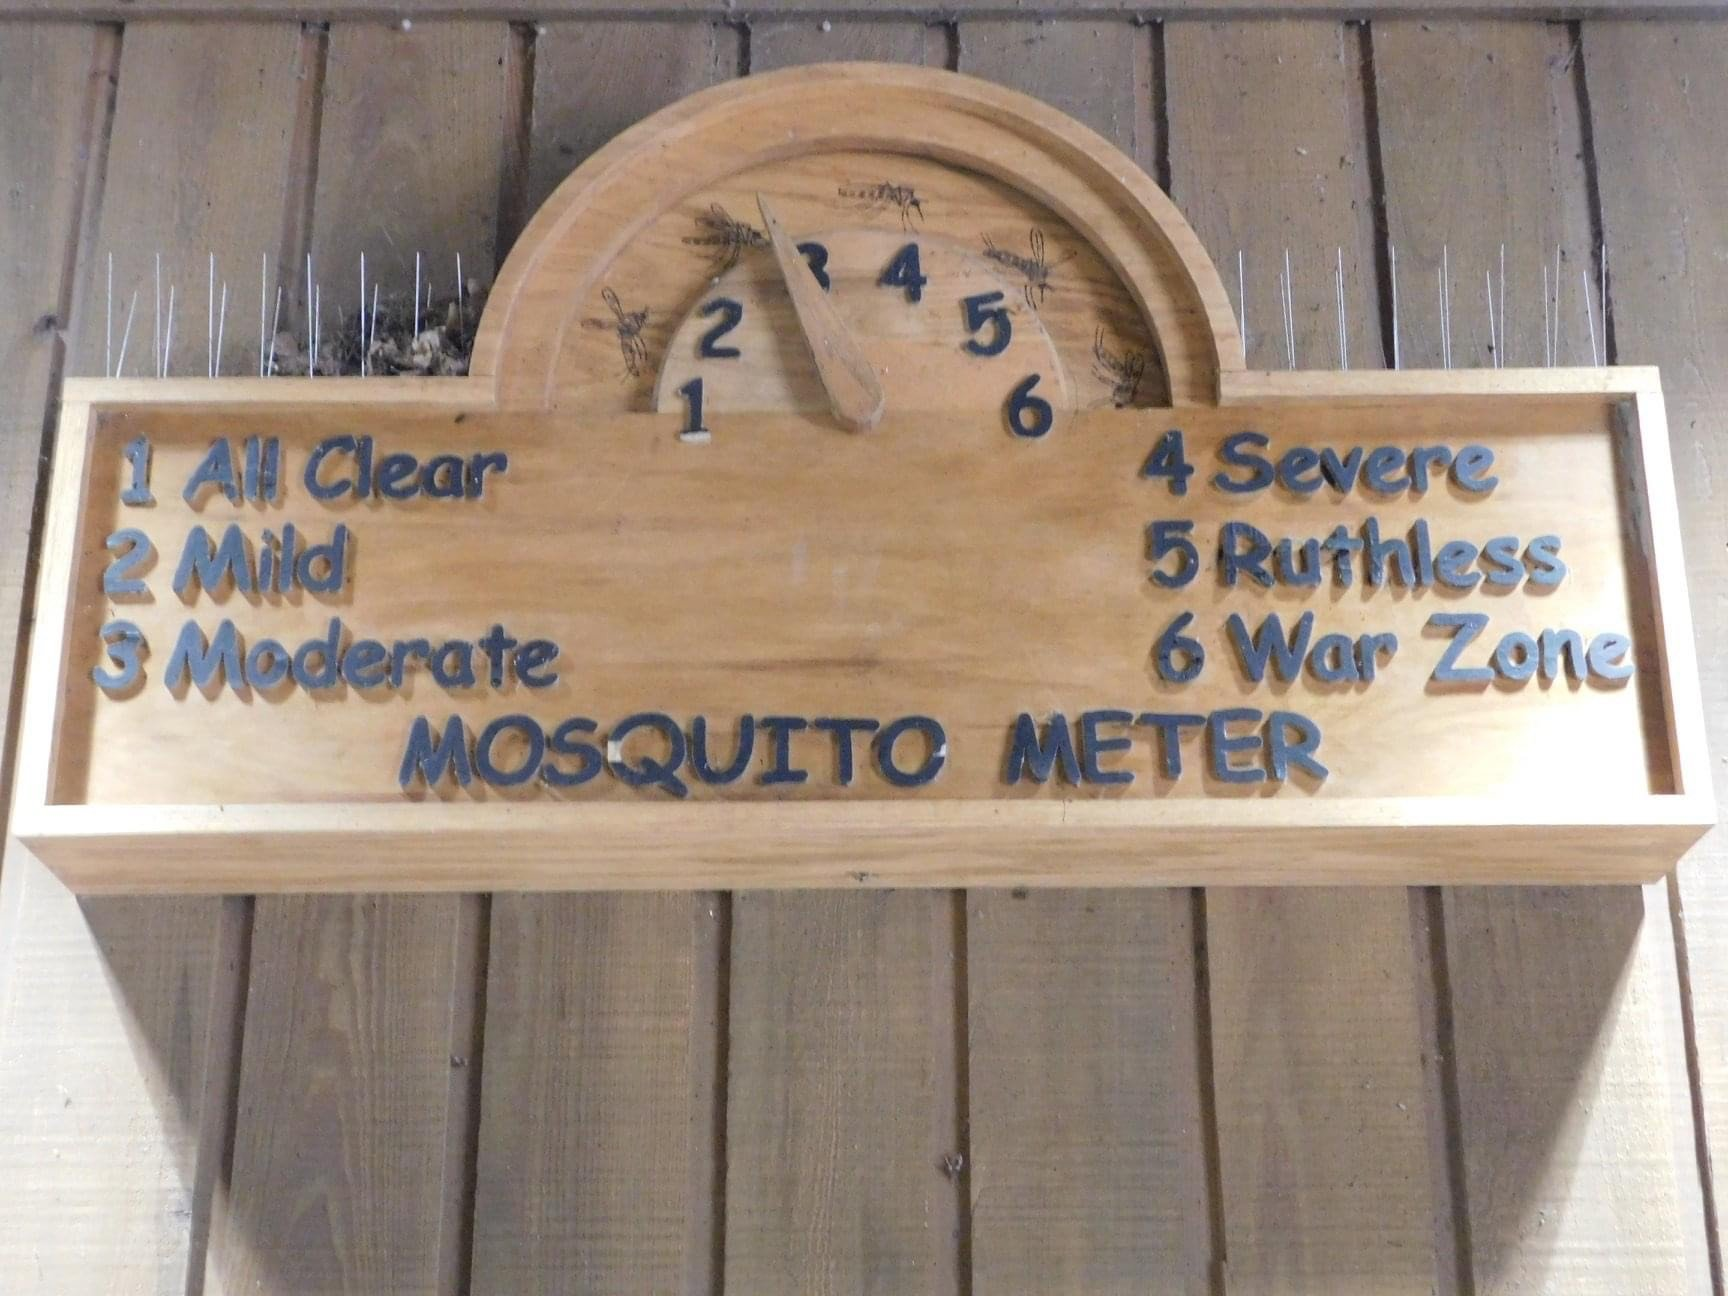 A mosquito meter